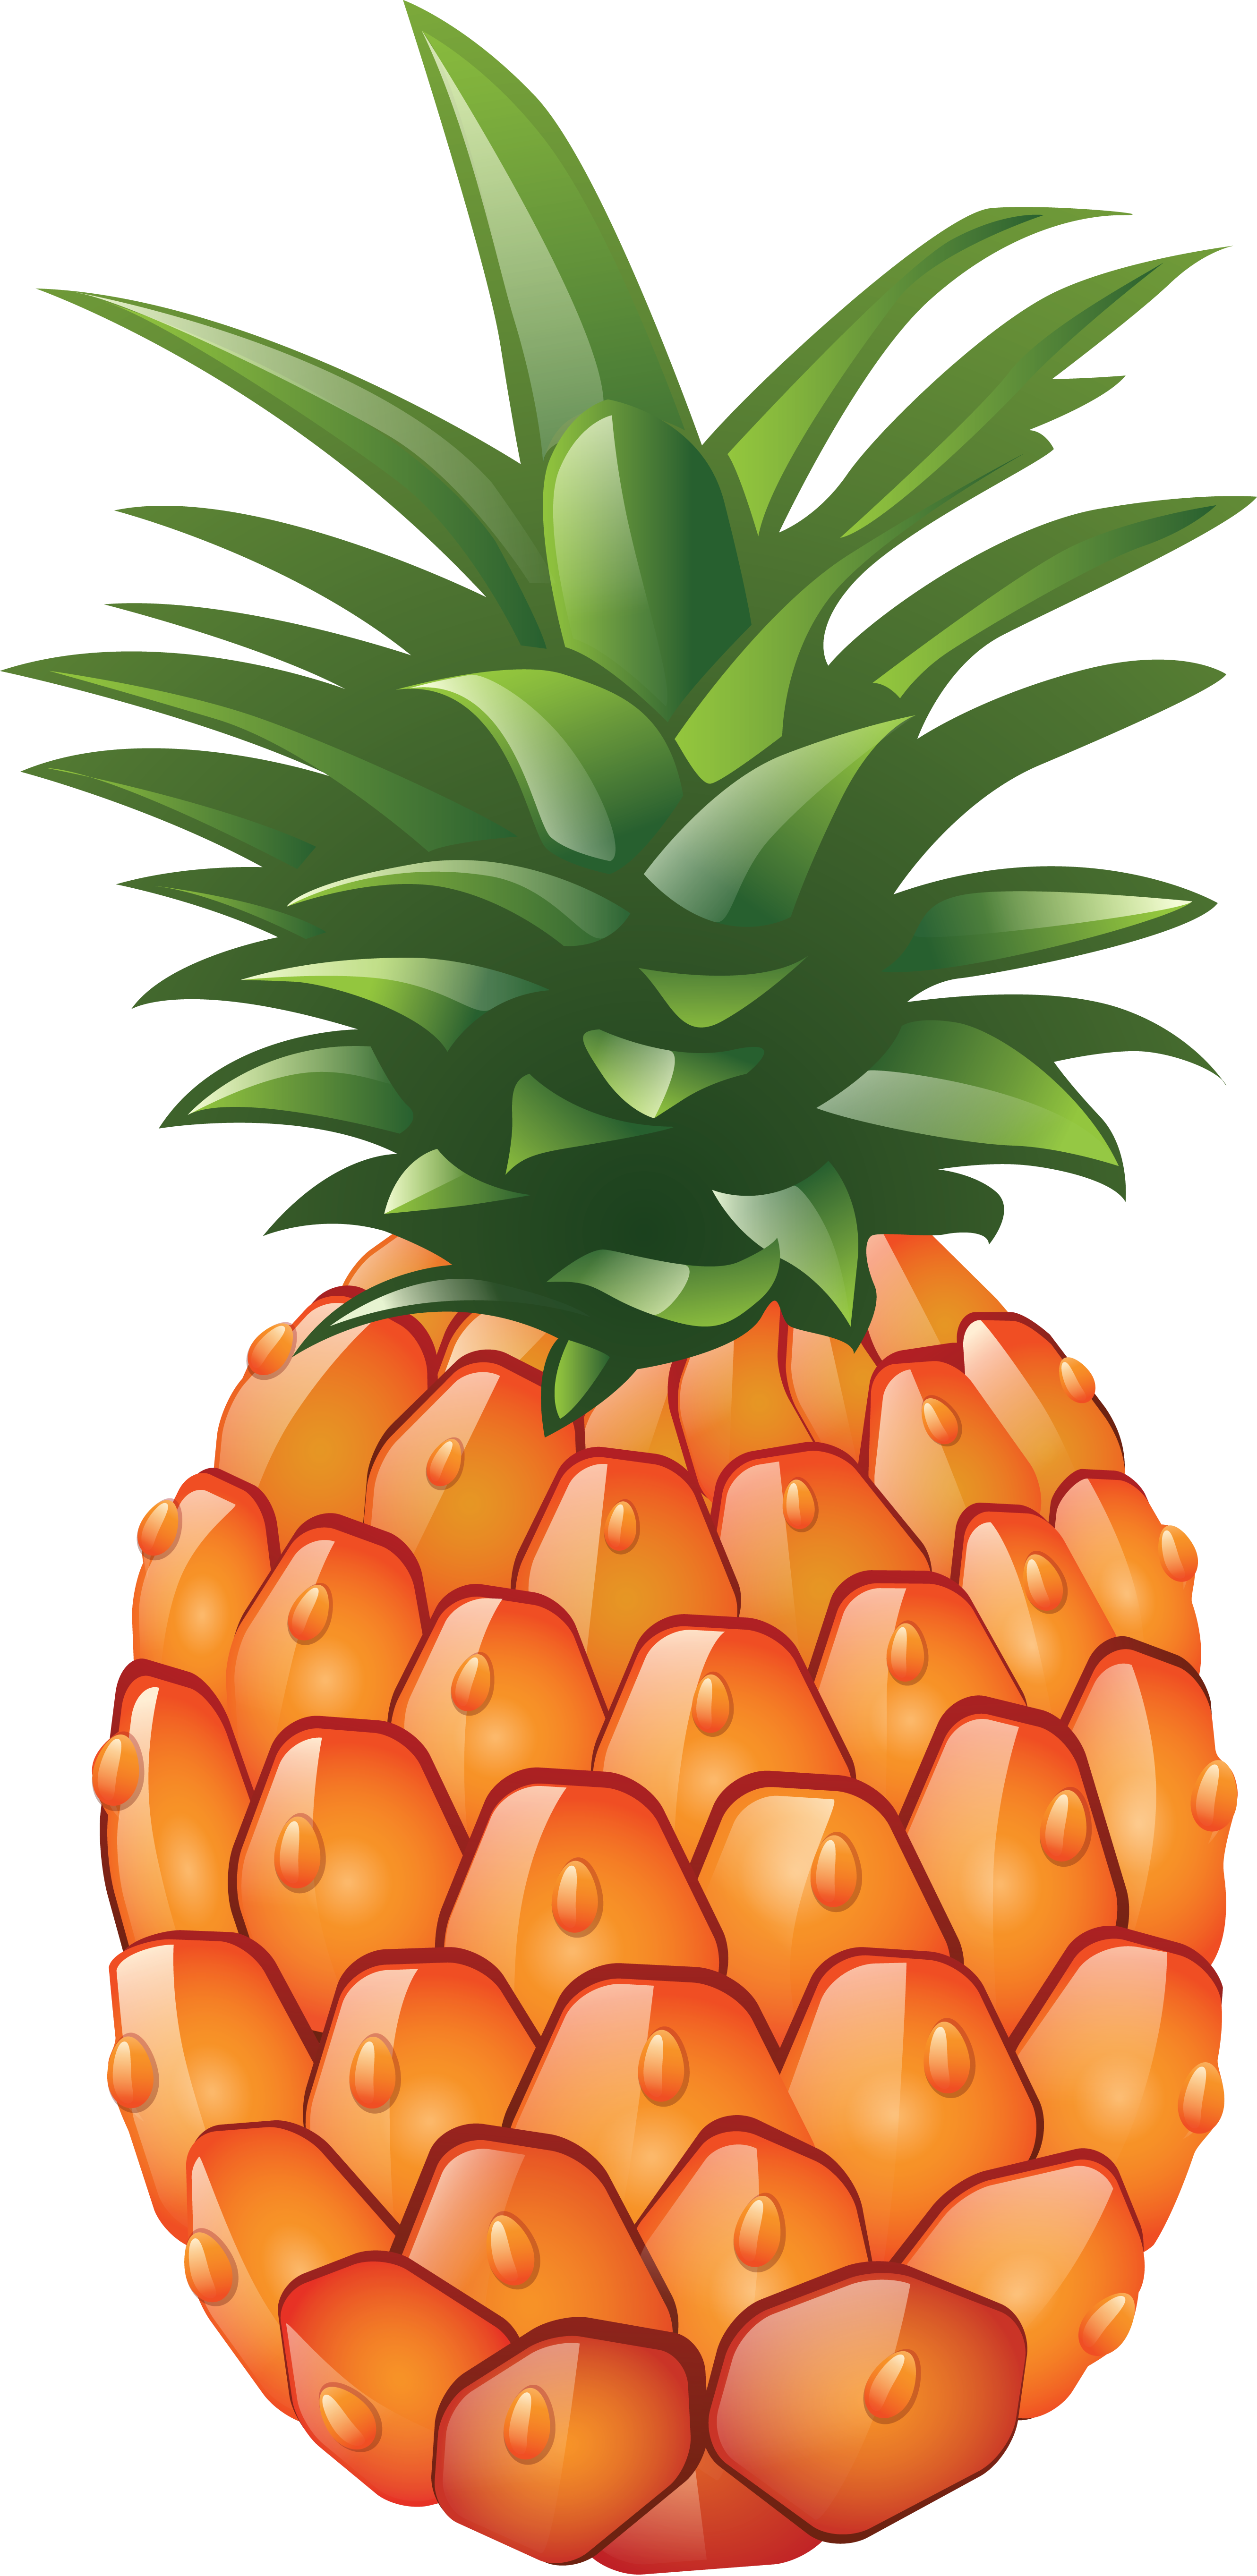 Pineapple Png Image Free Download Pineapple Images Pineapple Pineapple Parties